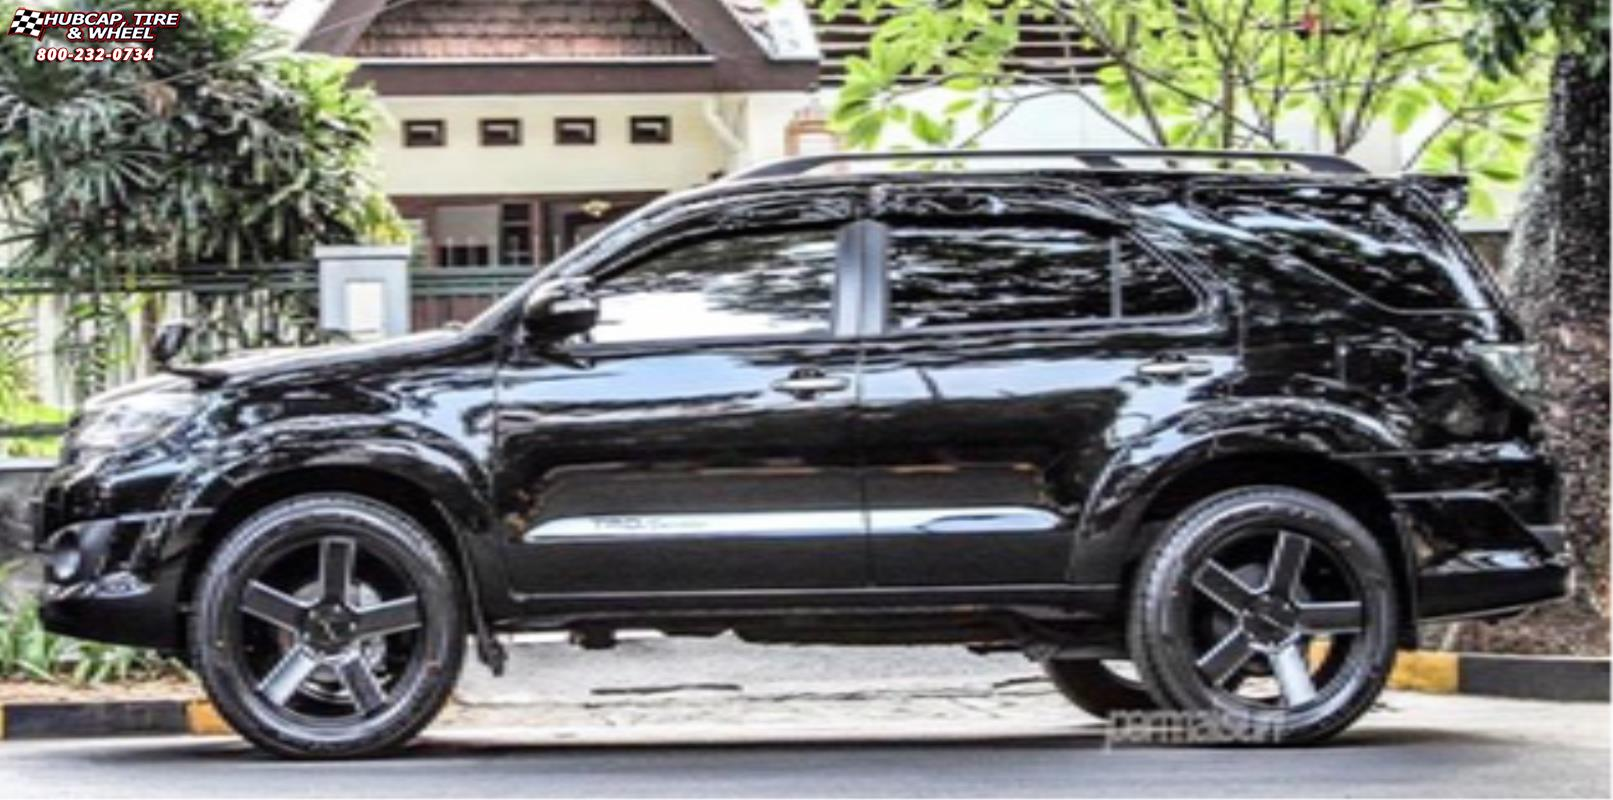 Toyota fortuner xd series km690 mc 5 satin black milled wheels and rims